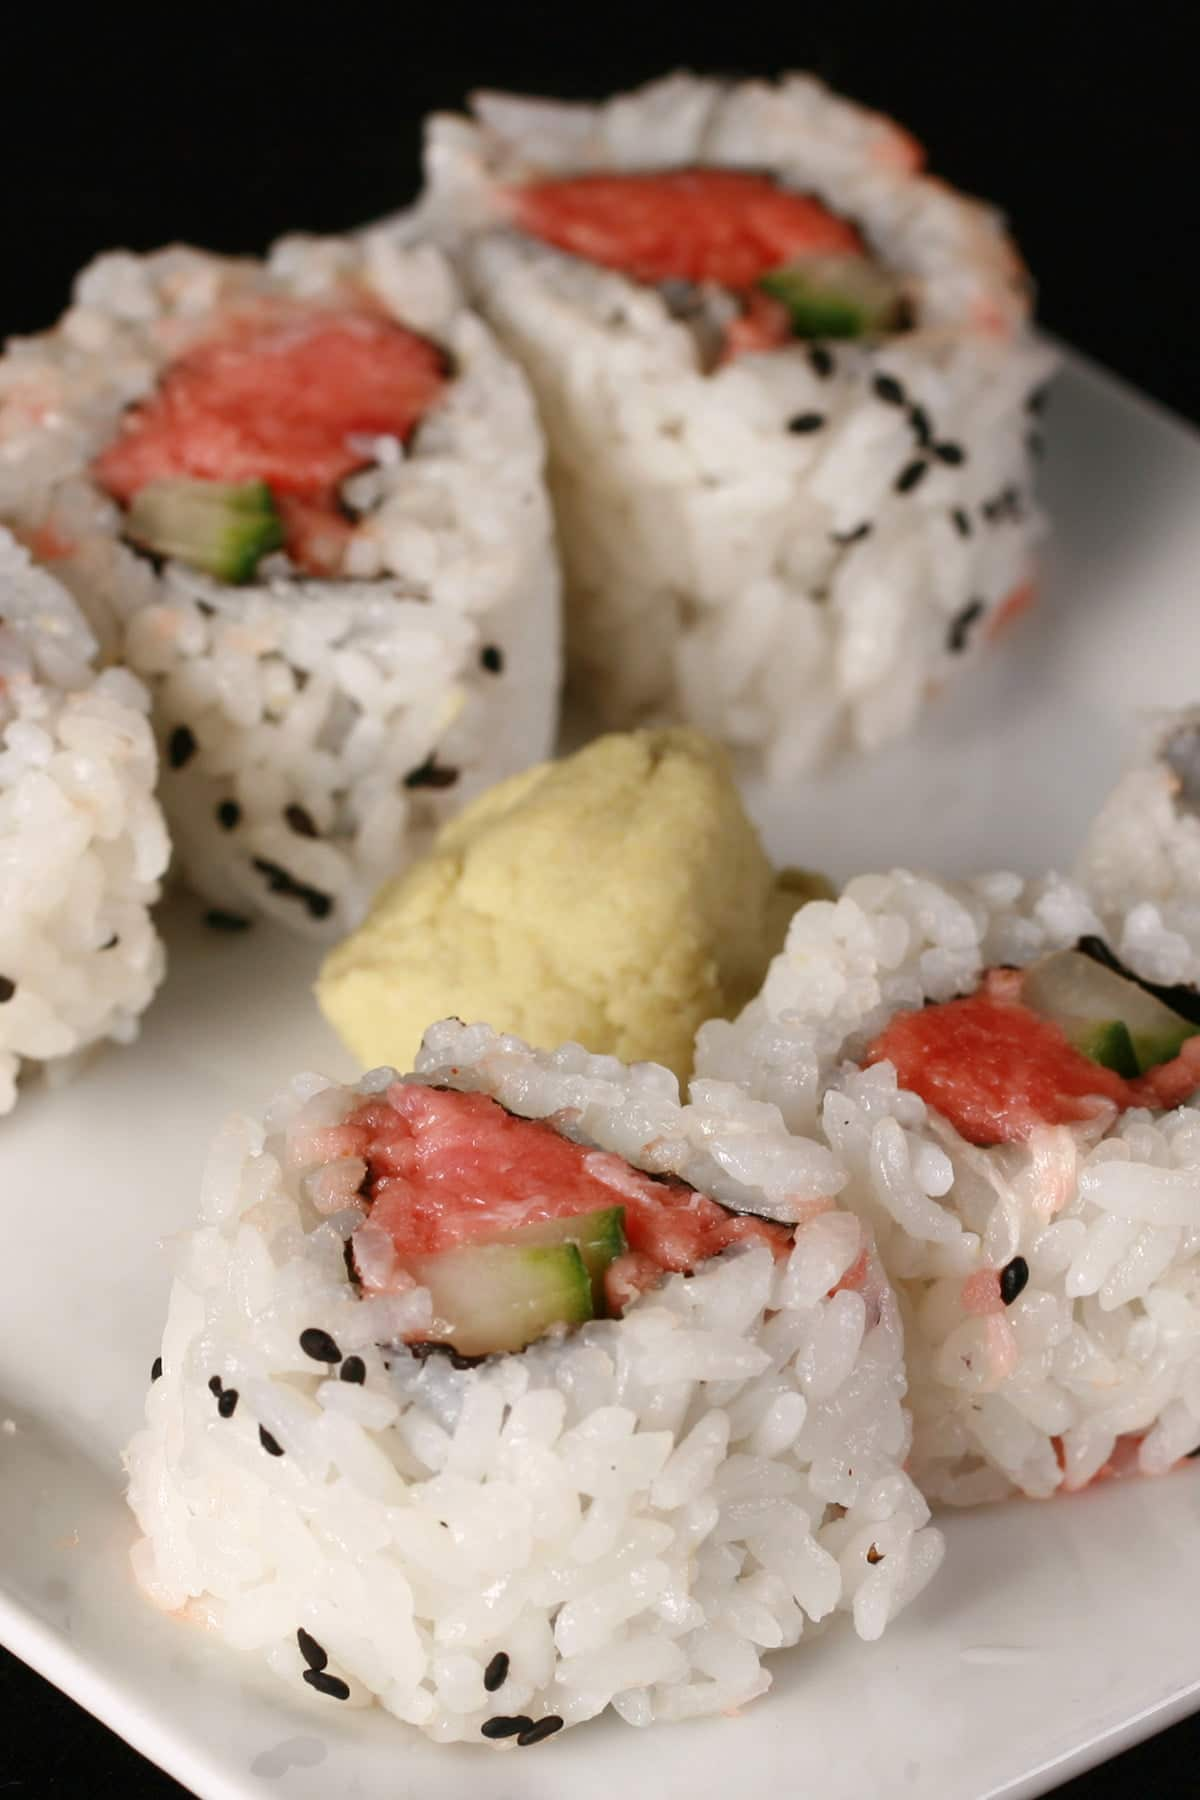 6 pieces of spicy tuna maki are arranged on a white plate, with a glob of wasabi in the middle.